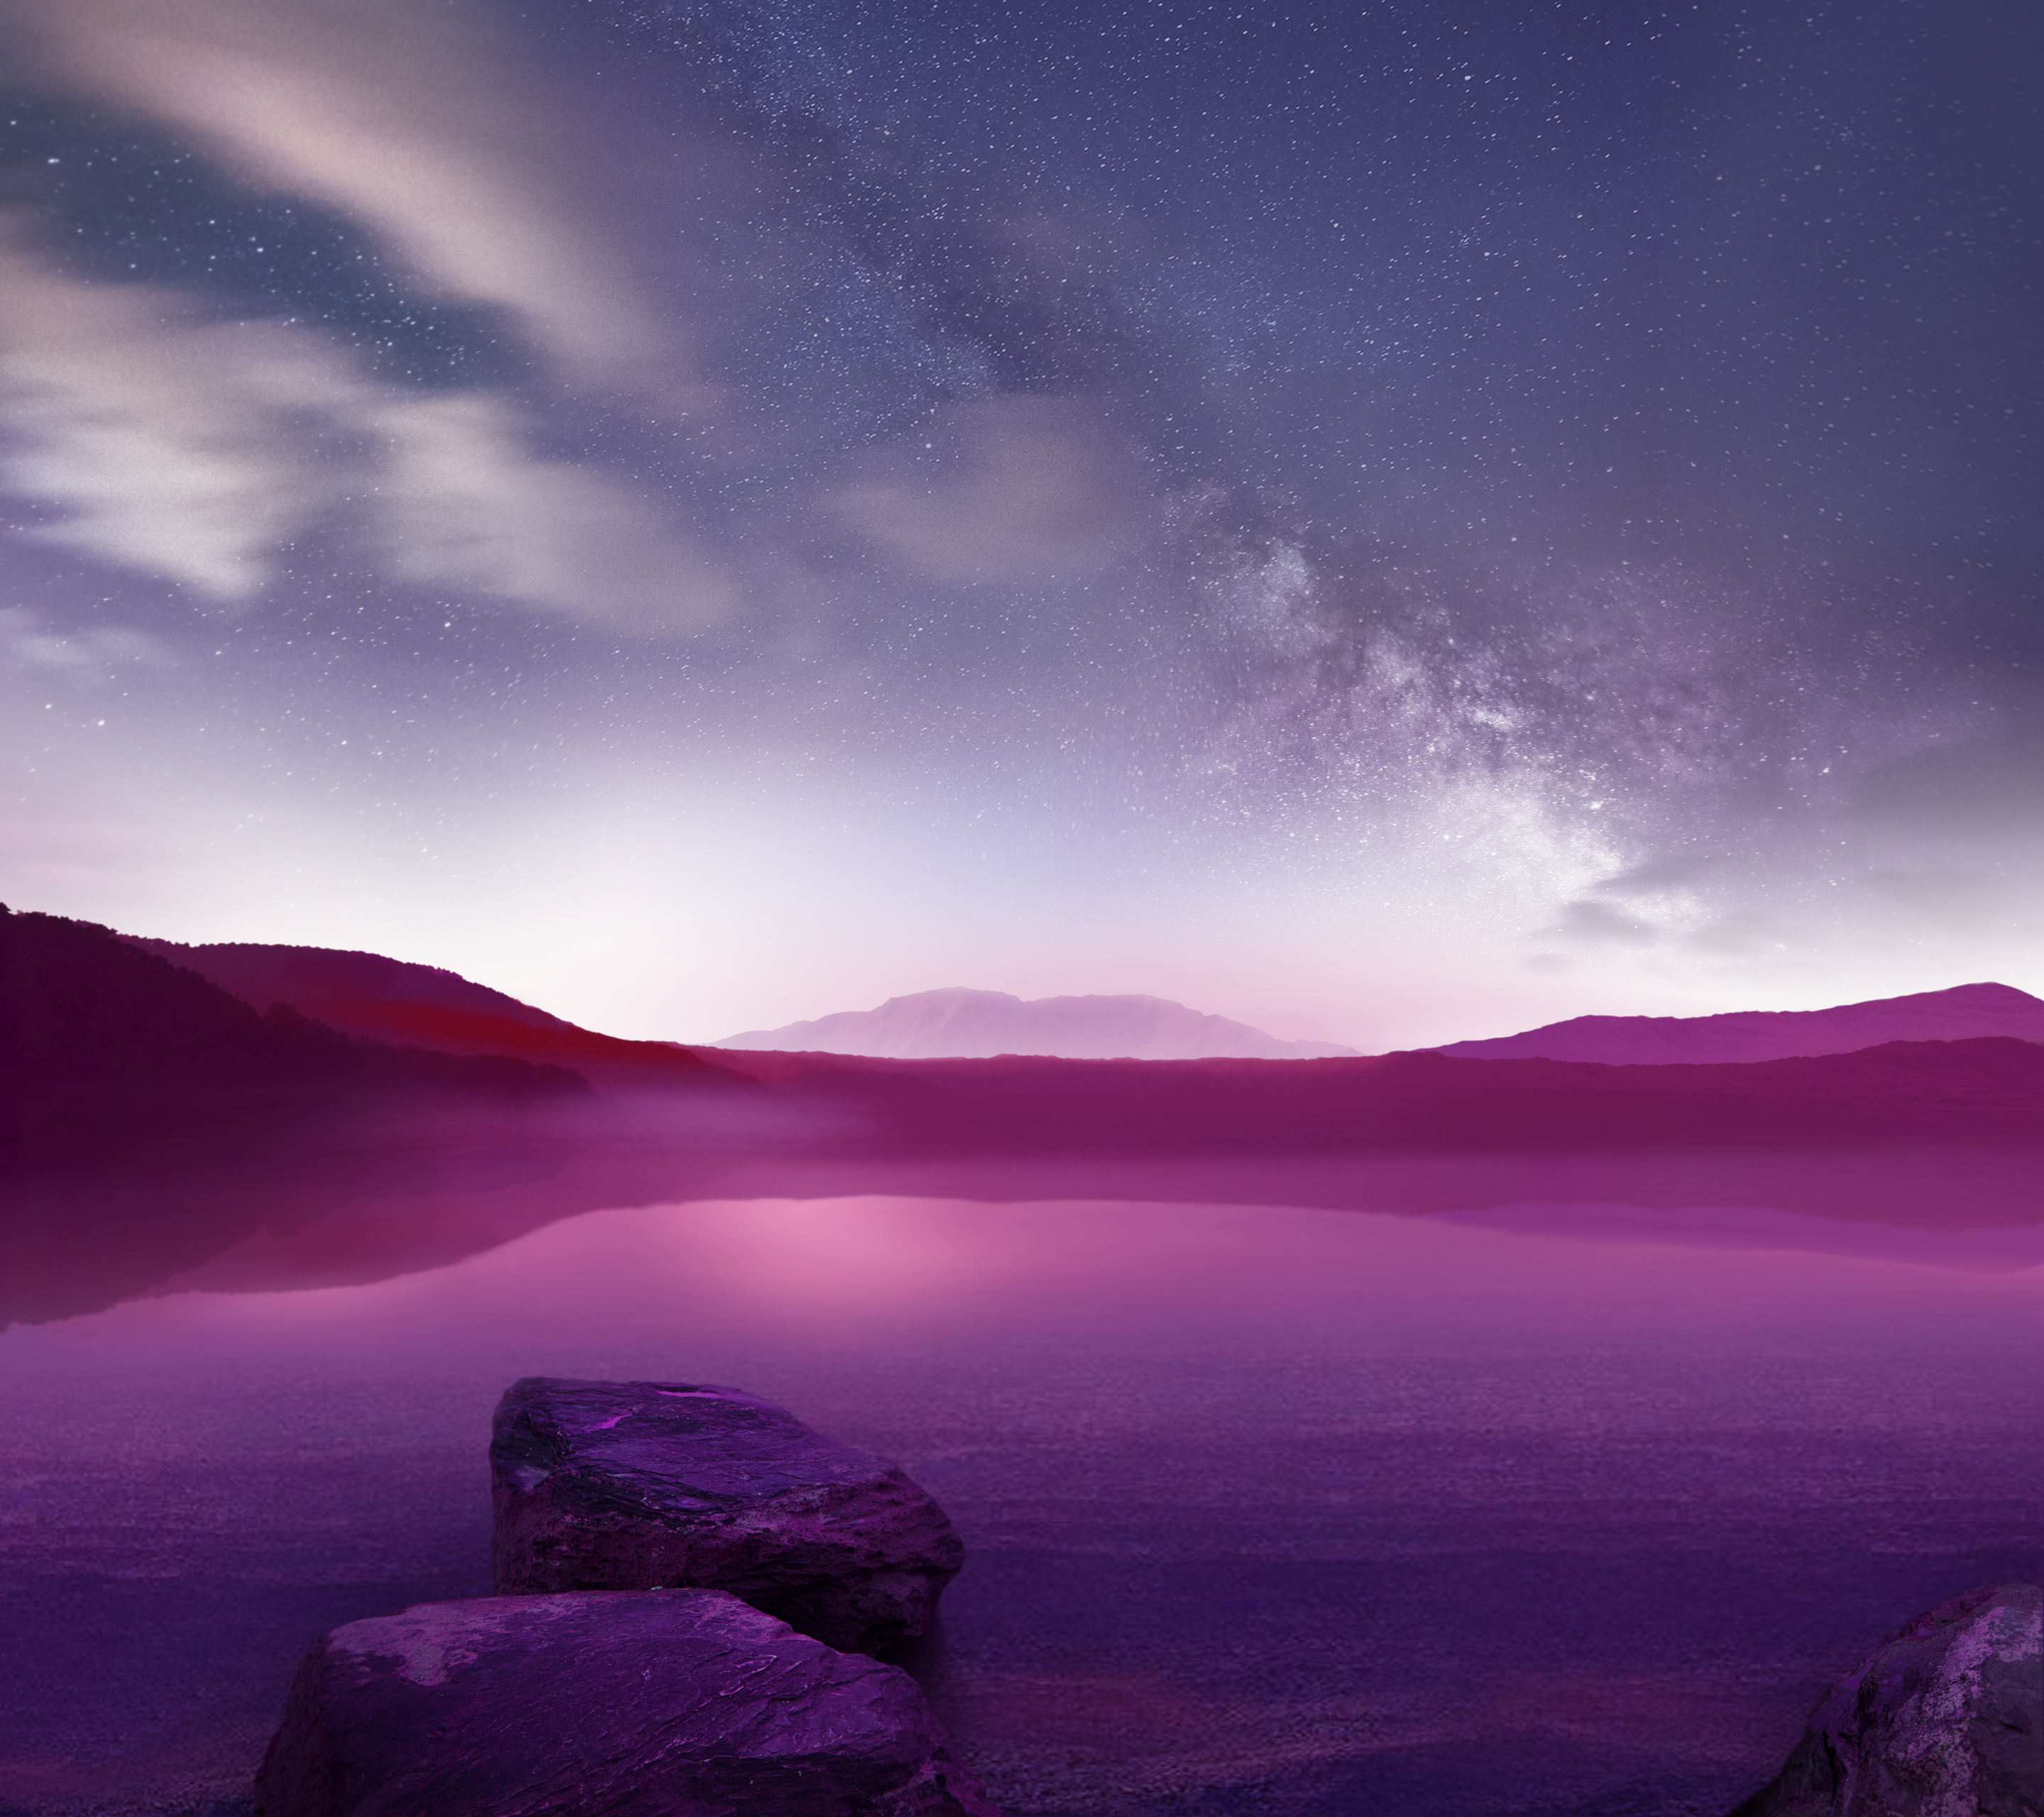 Wallpaper download in phone - Download These Lg G3 Wallpapers For Your Phone